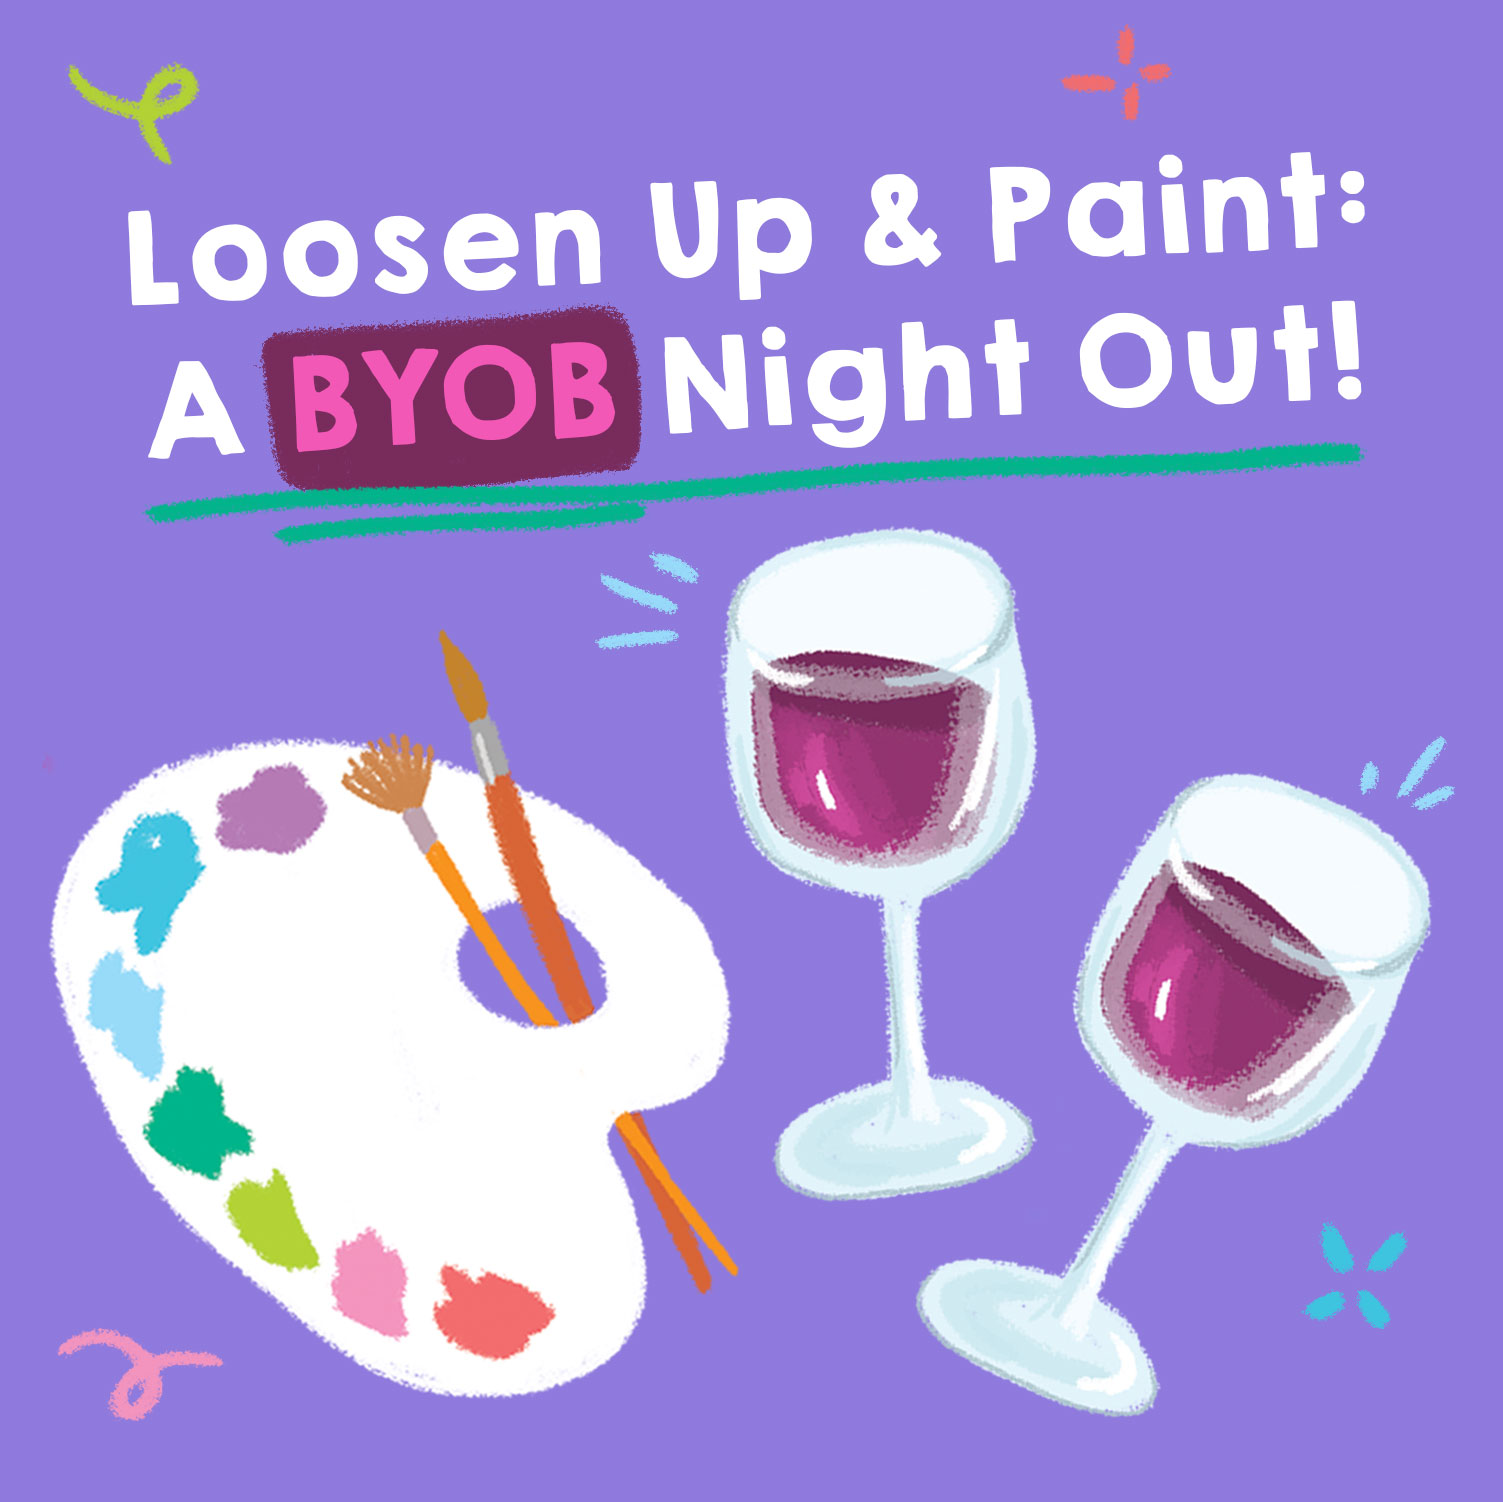 IN-PERSON: BYOB & Paint at The Rye Arts Center